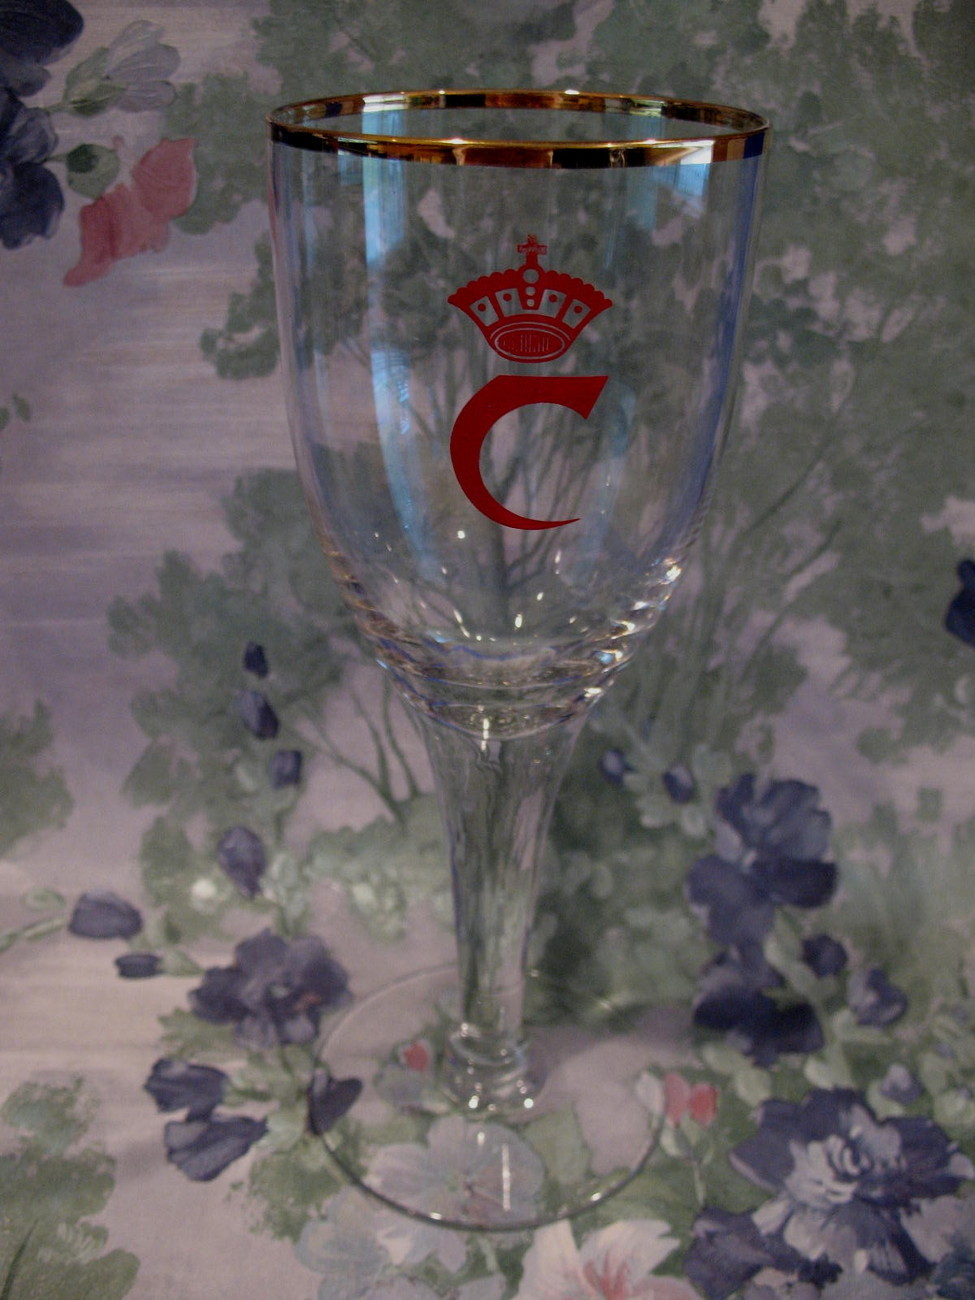 Vintage Carlsberg Beer Glass Souvenir Collector Collectible Red Crown C Logo